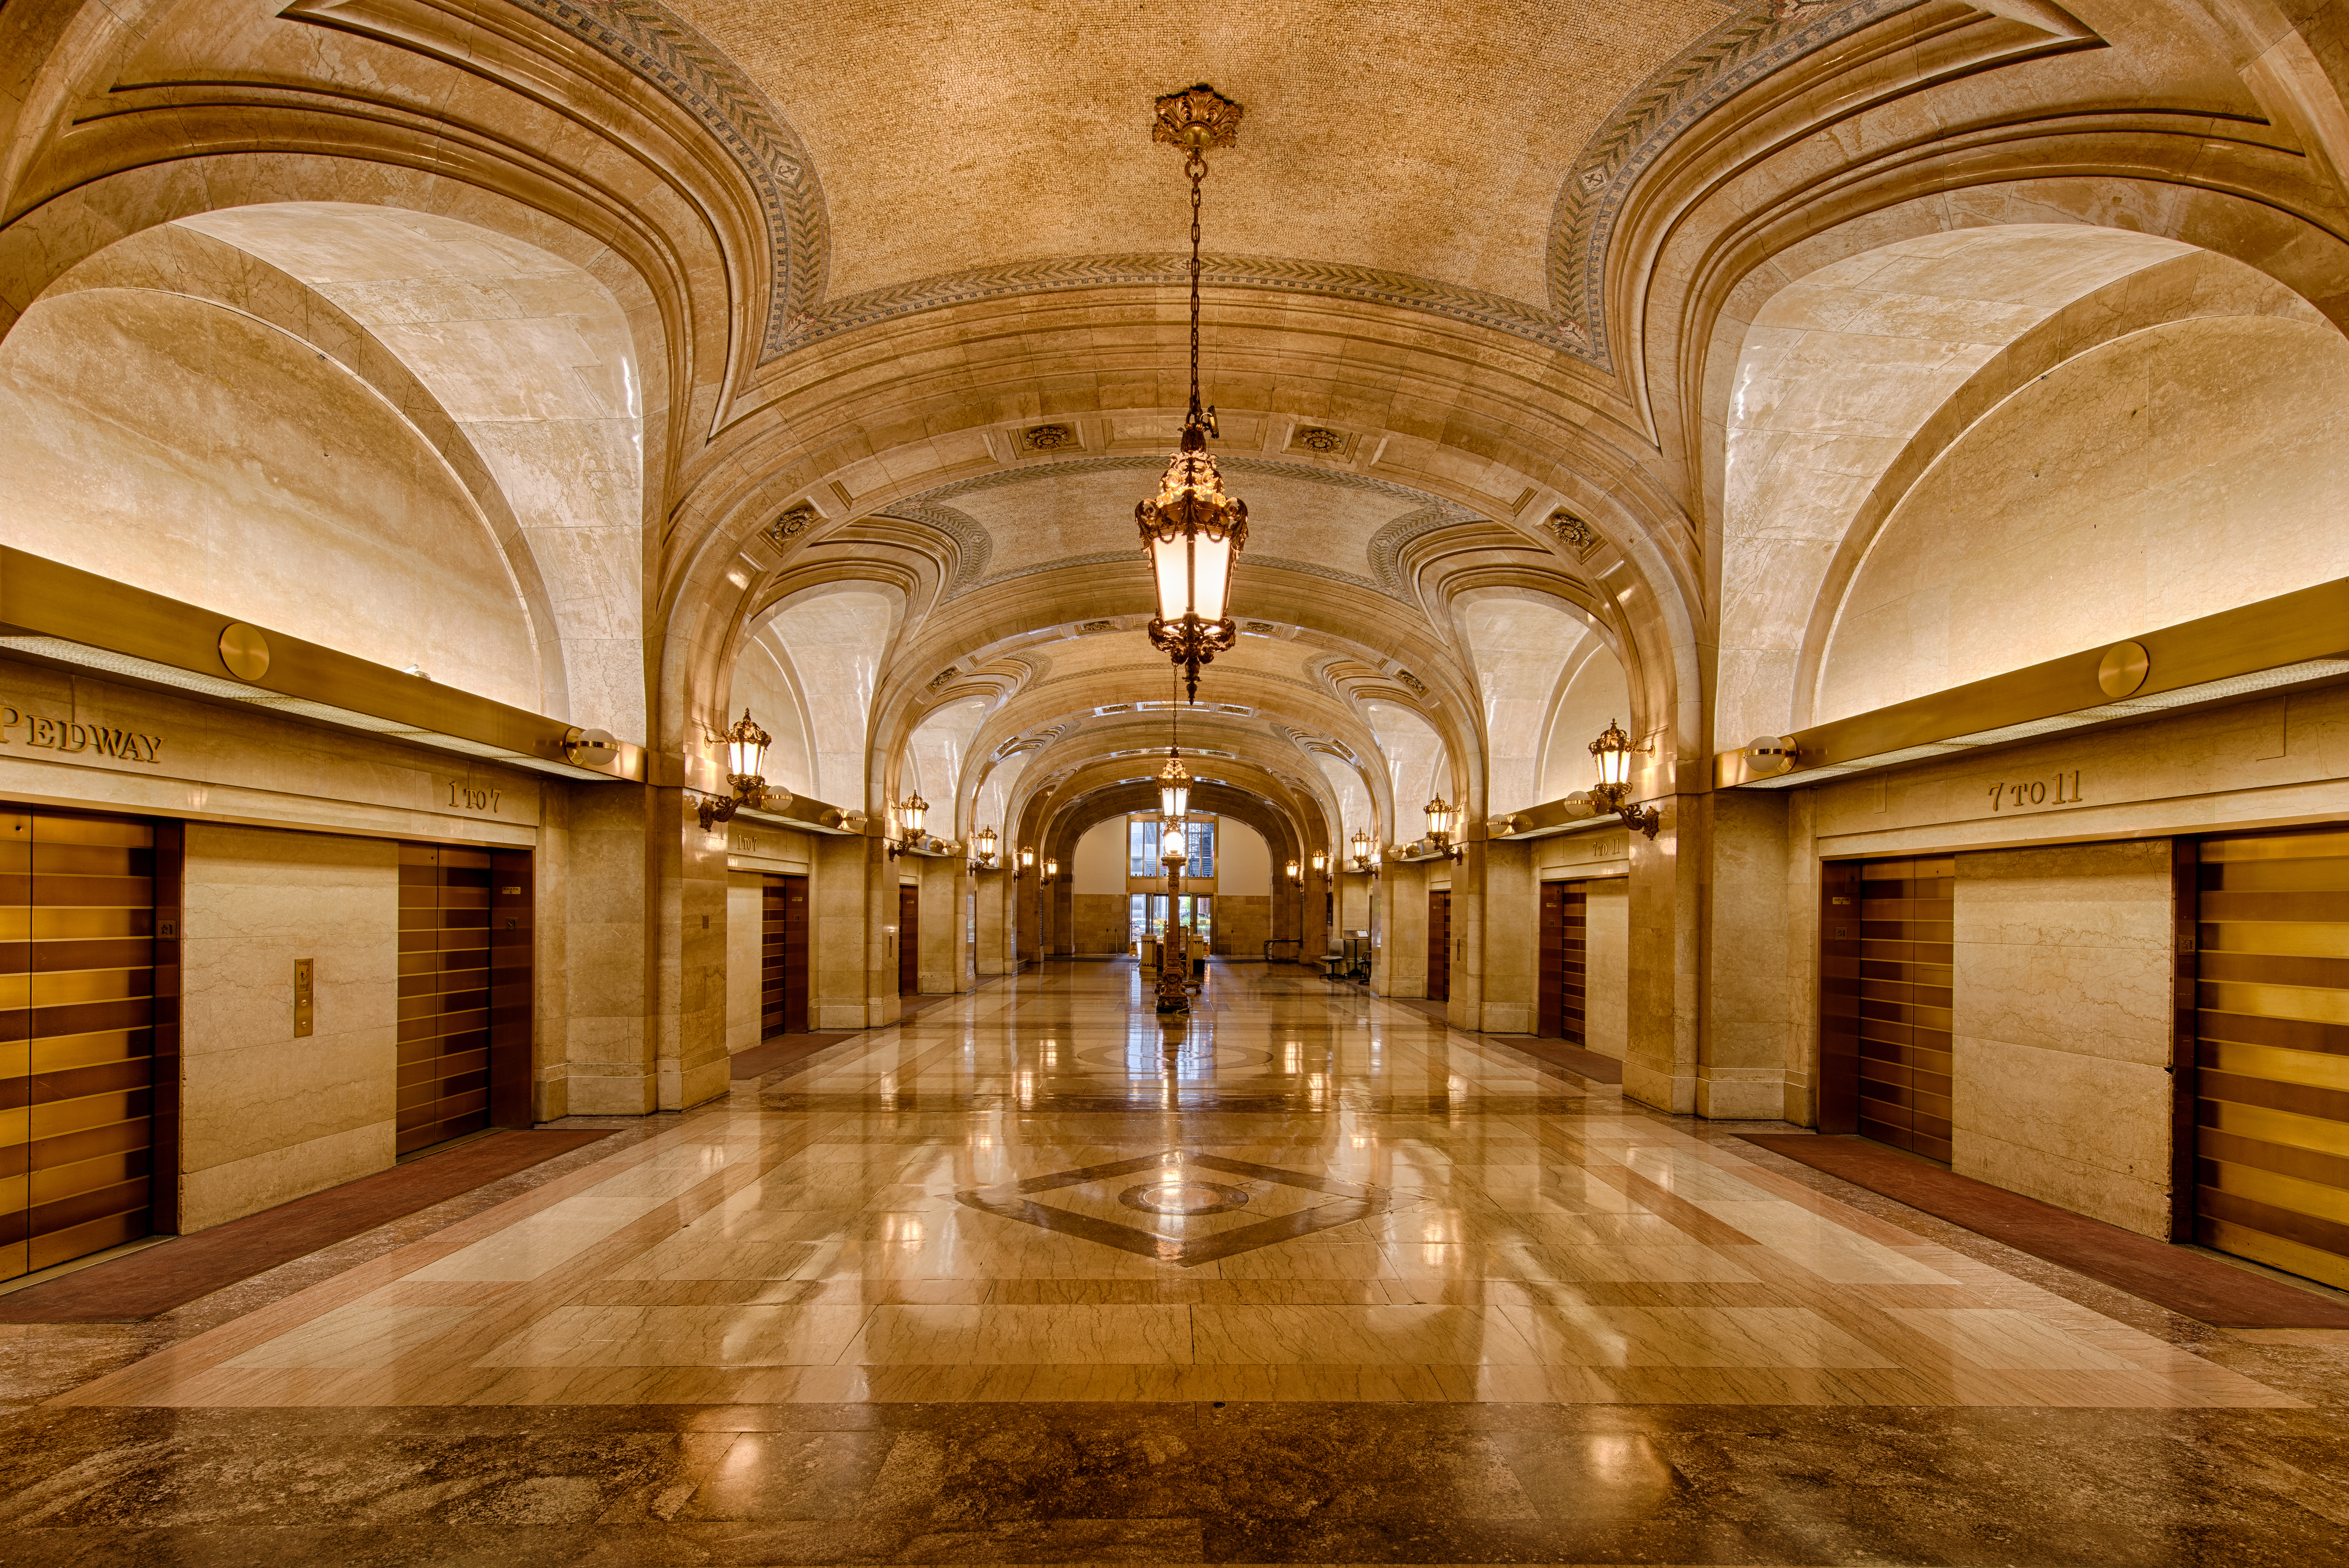 A marble-clad hall with lantern chandeliers, gold elevators, and detailed floors.